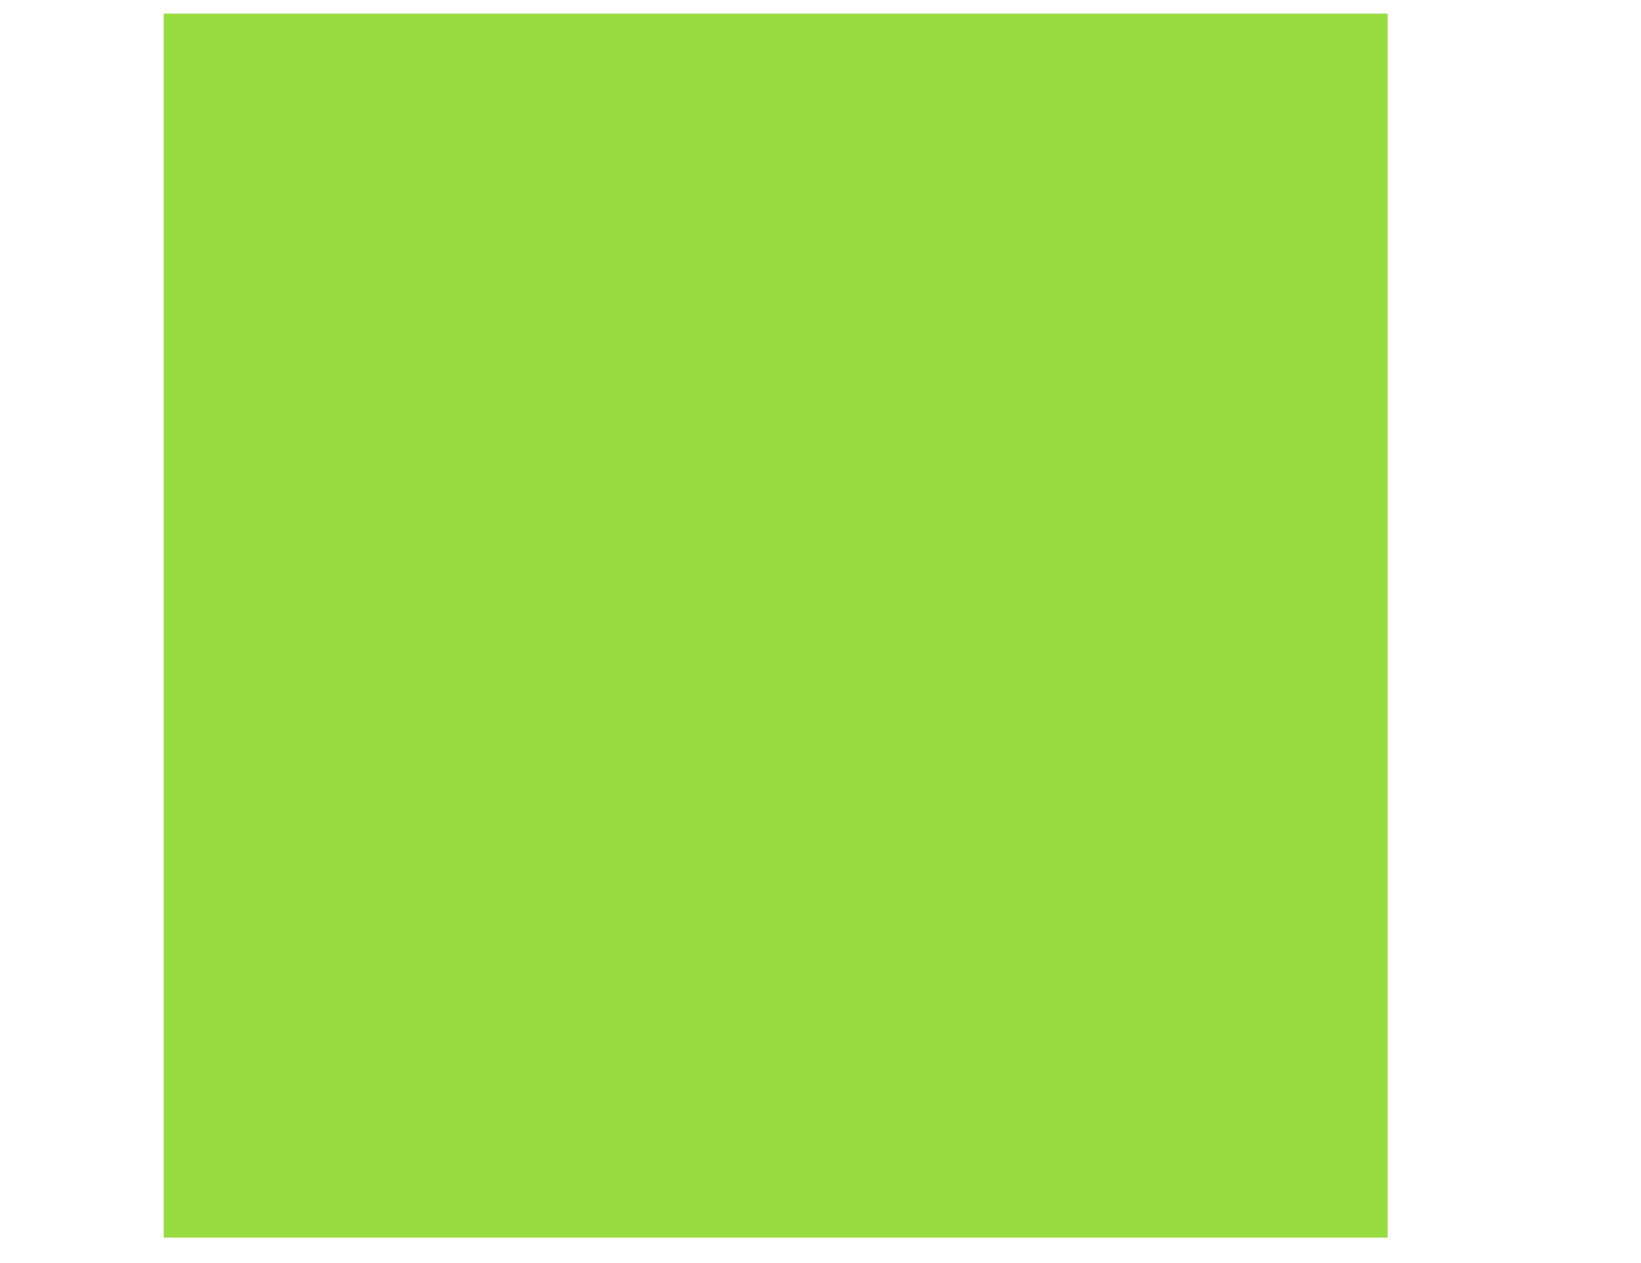 Light Green Color Boxes - Homes Alternative   #52270